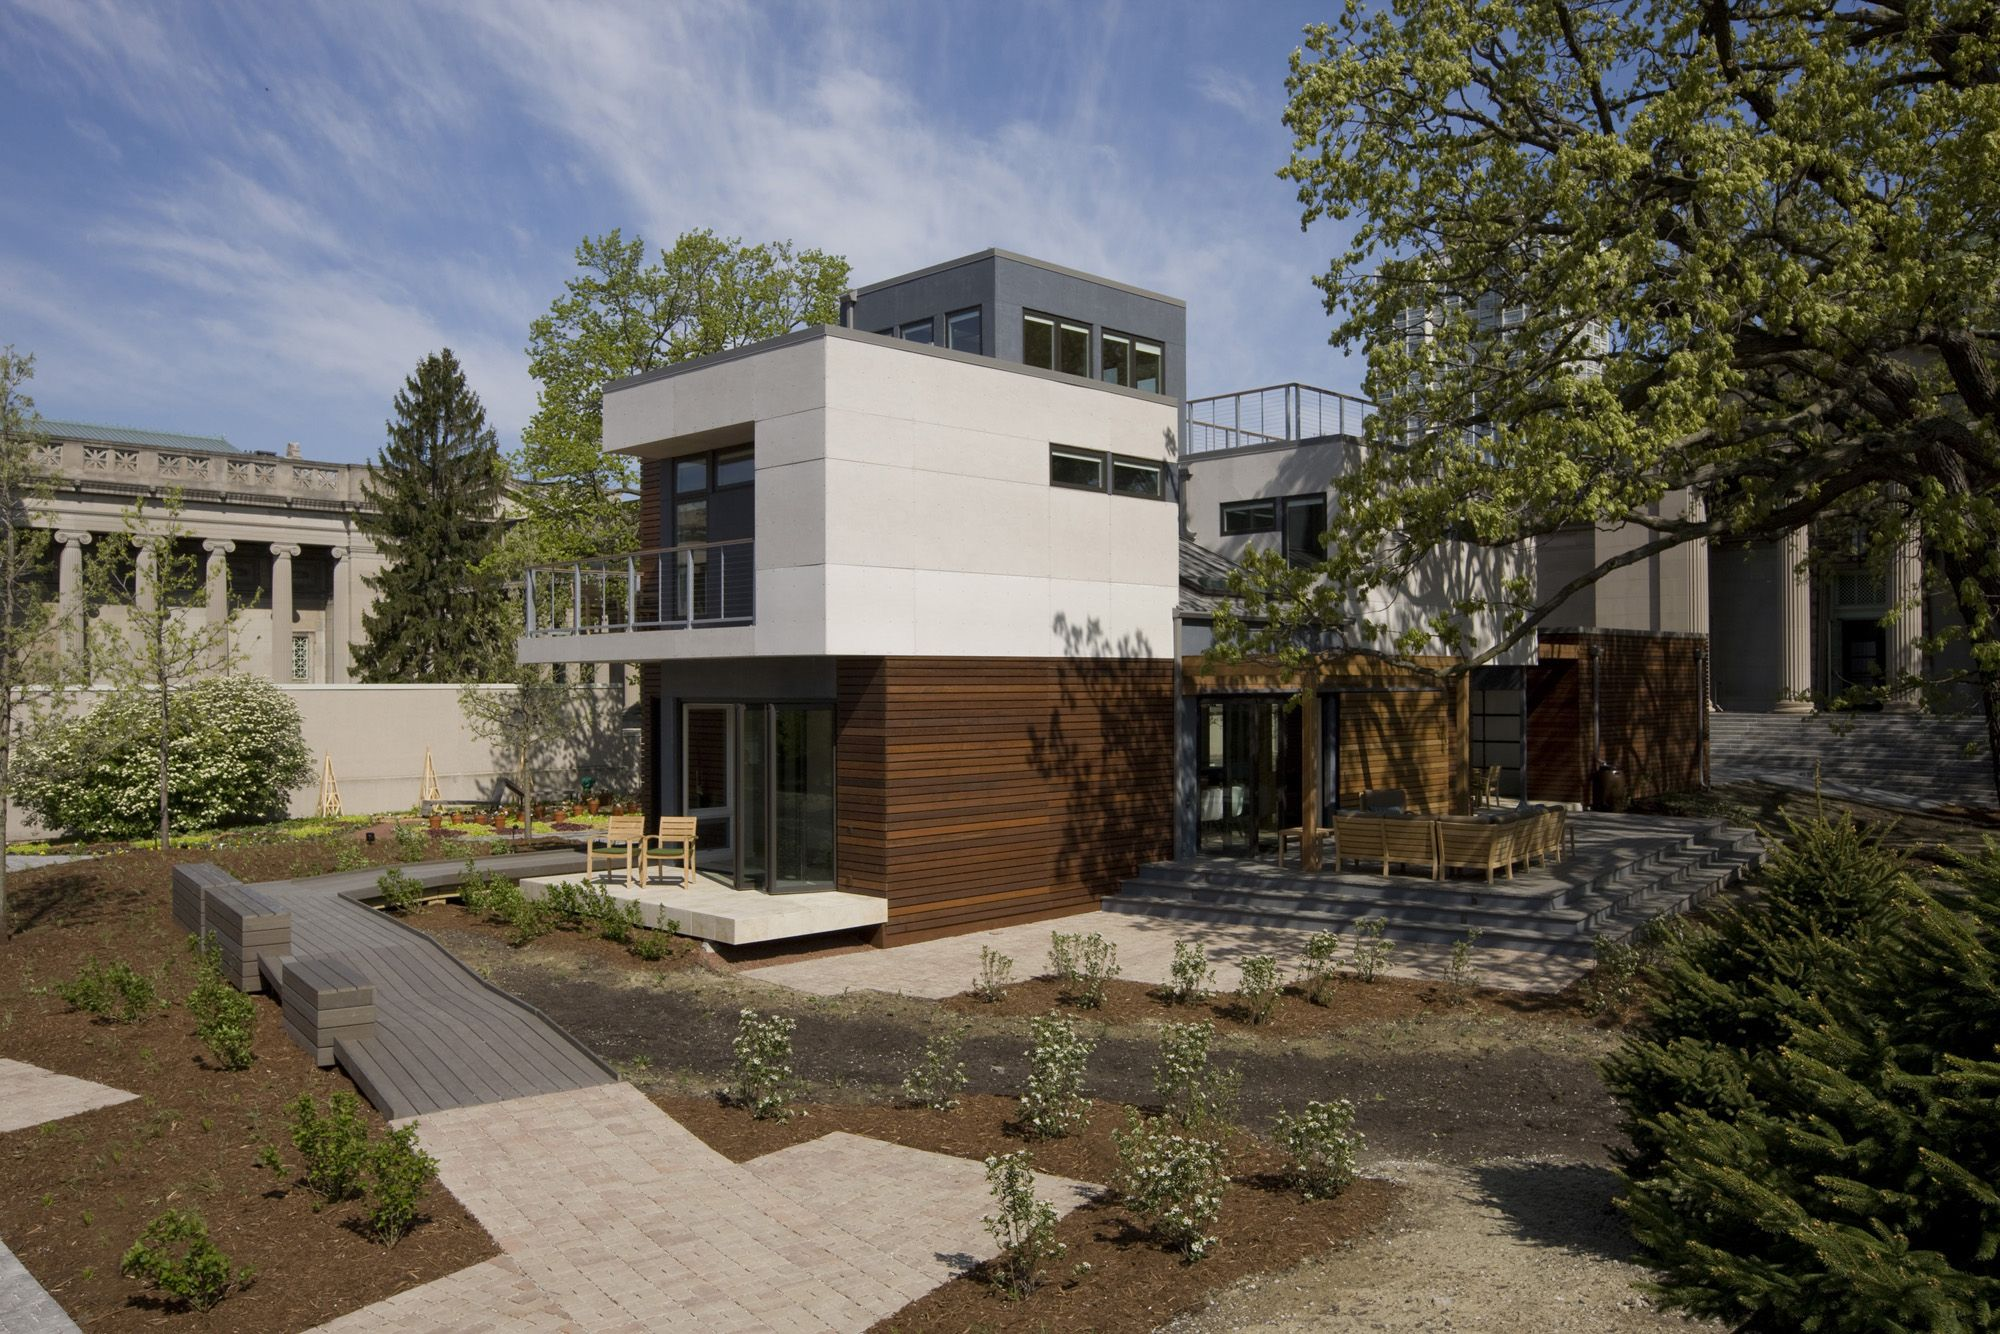 smart home design plans. Images Of The Exterior Smart Home Design Architecture - Style \u0026 Designs Plans